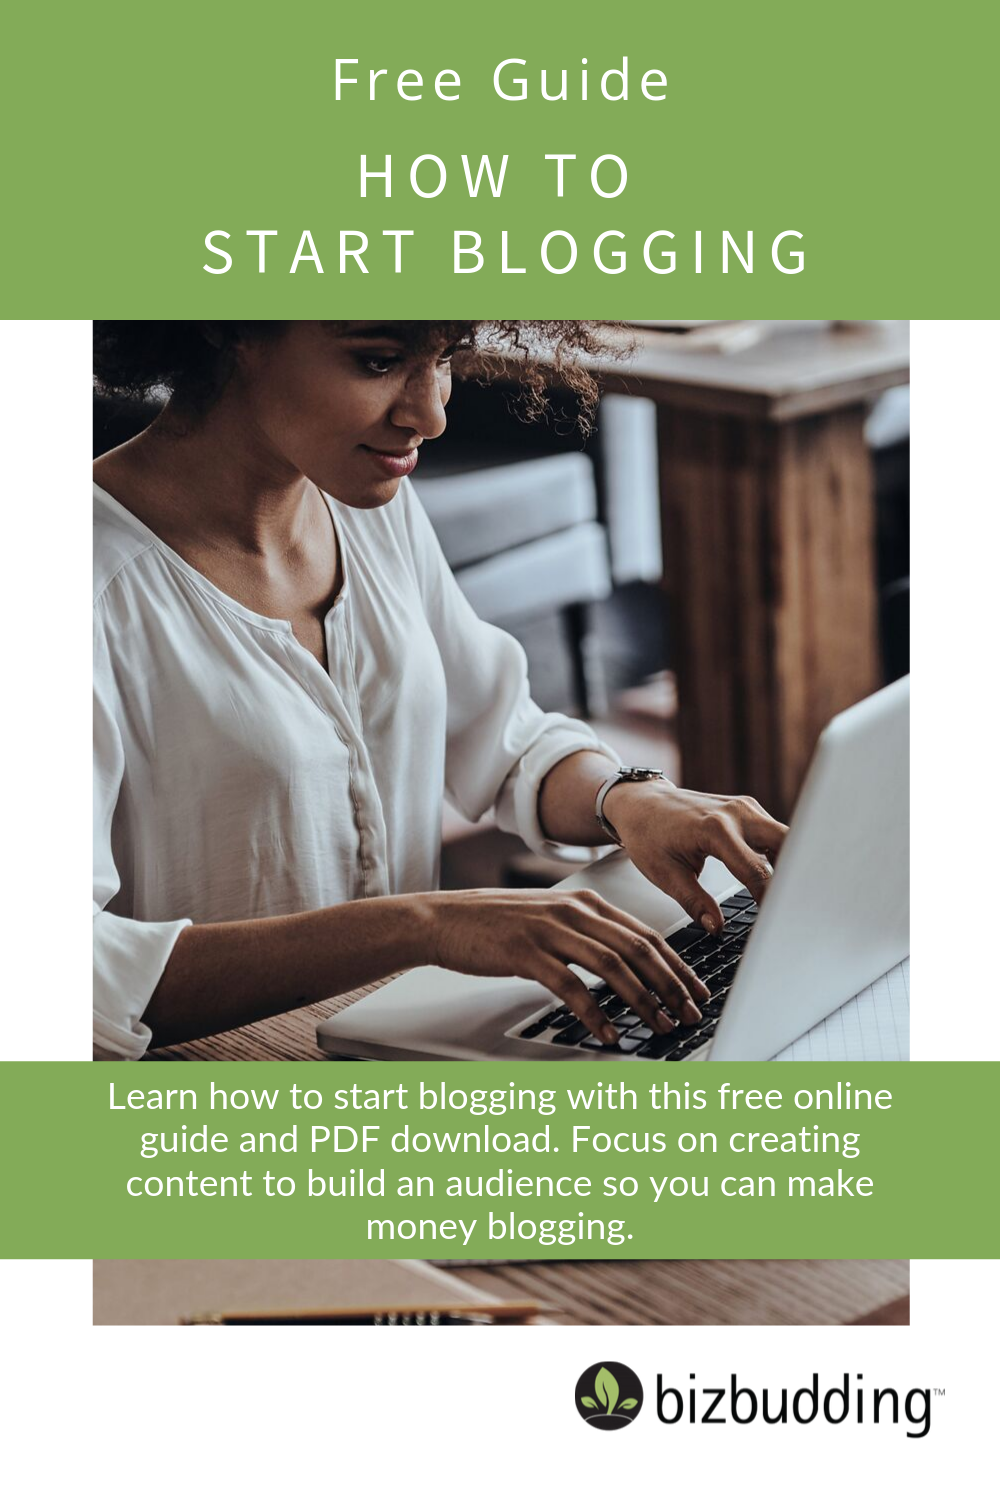 Pinterest image of a woman on a laptop learning about how to start blogging